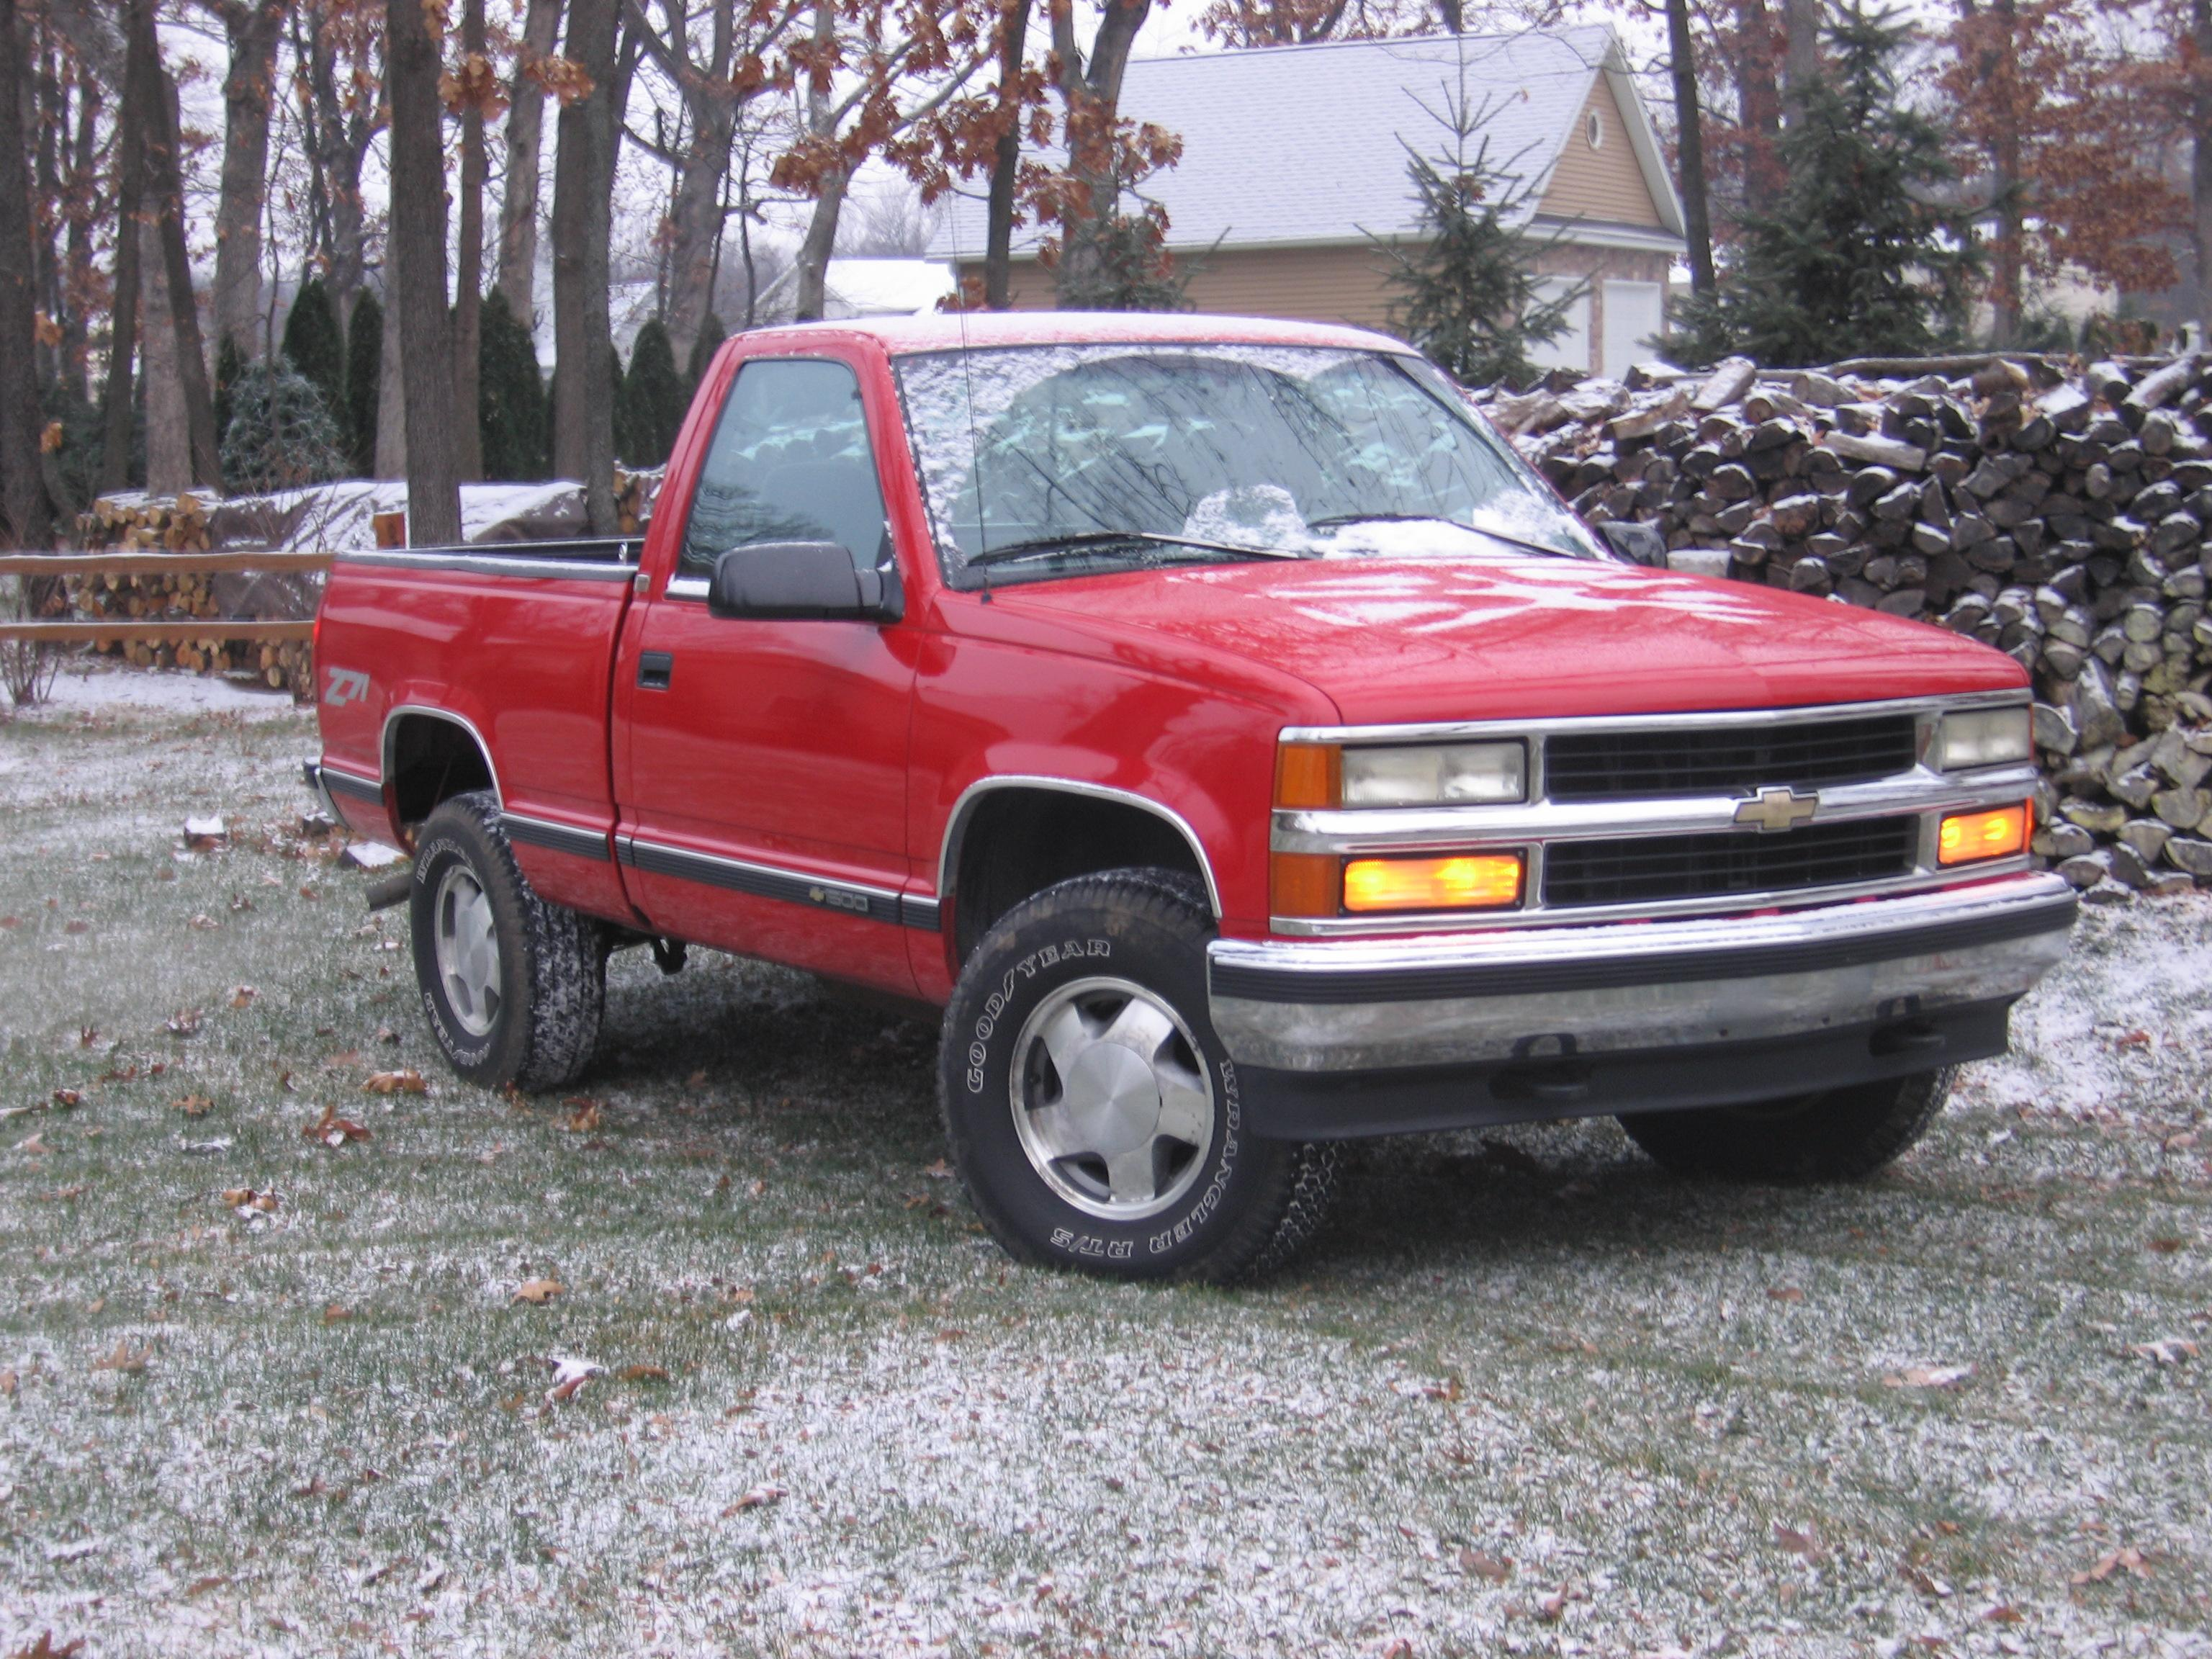 amazingly genuine pickup located is news to interior this rolls heart bed performance out start panels got schwartz complete build stake very a with was the chevy truck project door solid off quick when racer of cruiser and new